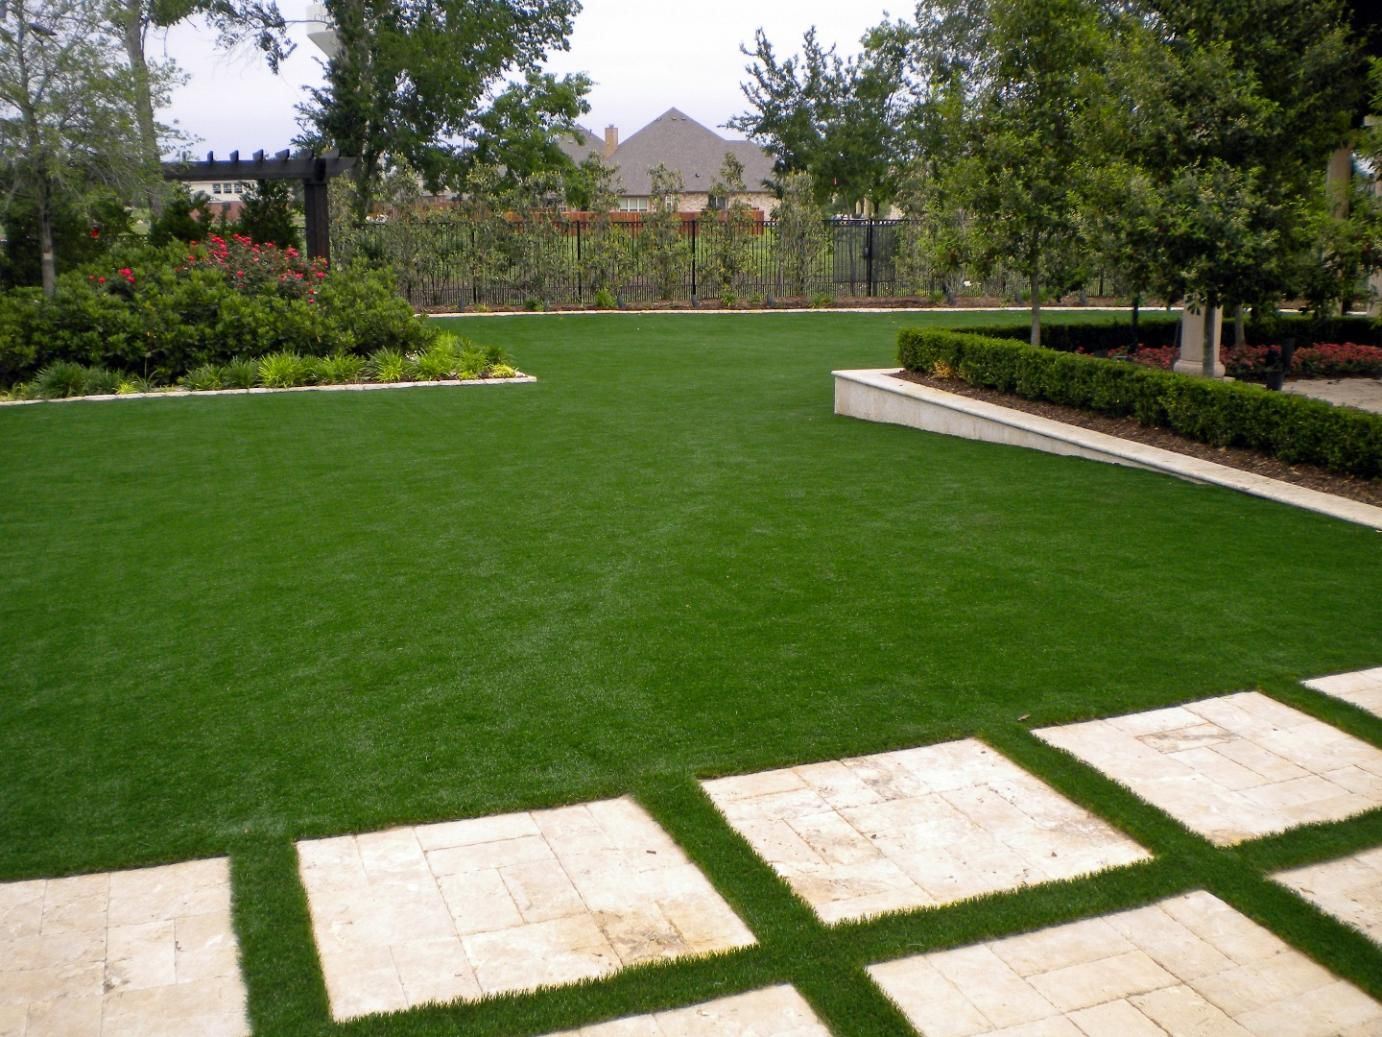 Exceptionnel Do It Yourself Artificial Grass Installation, Synthetic Grass. It Is Easy  To Install Synthetic Turf And Change Lawn In 24 Hours.